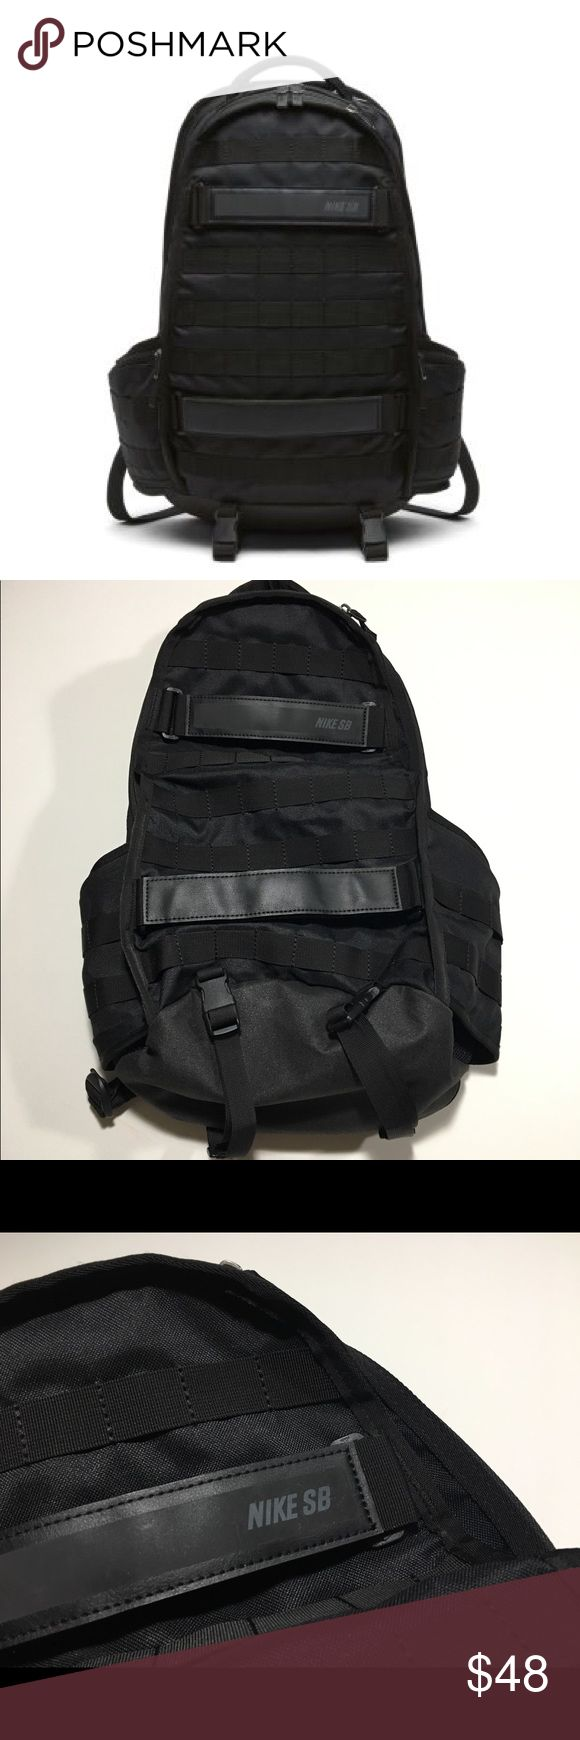 Nike SB RPM Skateboarding Backpack Black Literally got this bag maybe a few weeks ago and used it 2-3 times, still in like new condition. Only selling it because I found a better bag in all black so I don't need both. Retail is 90 online. Nike Bags Backpacks